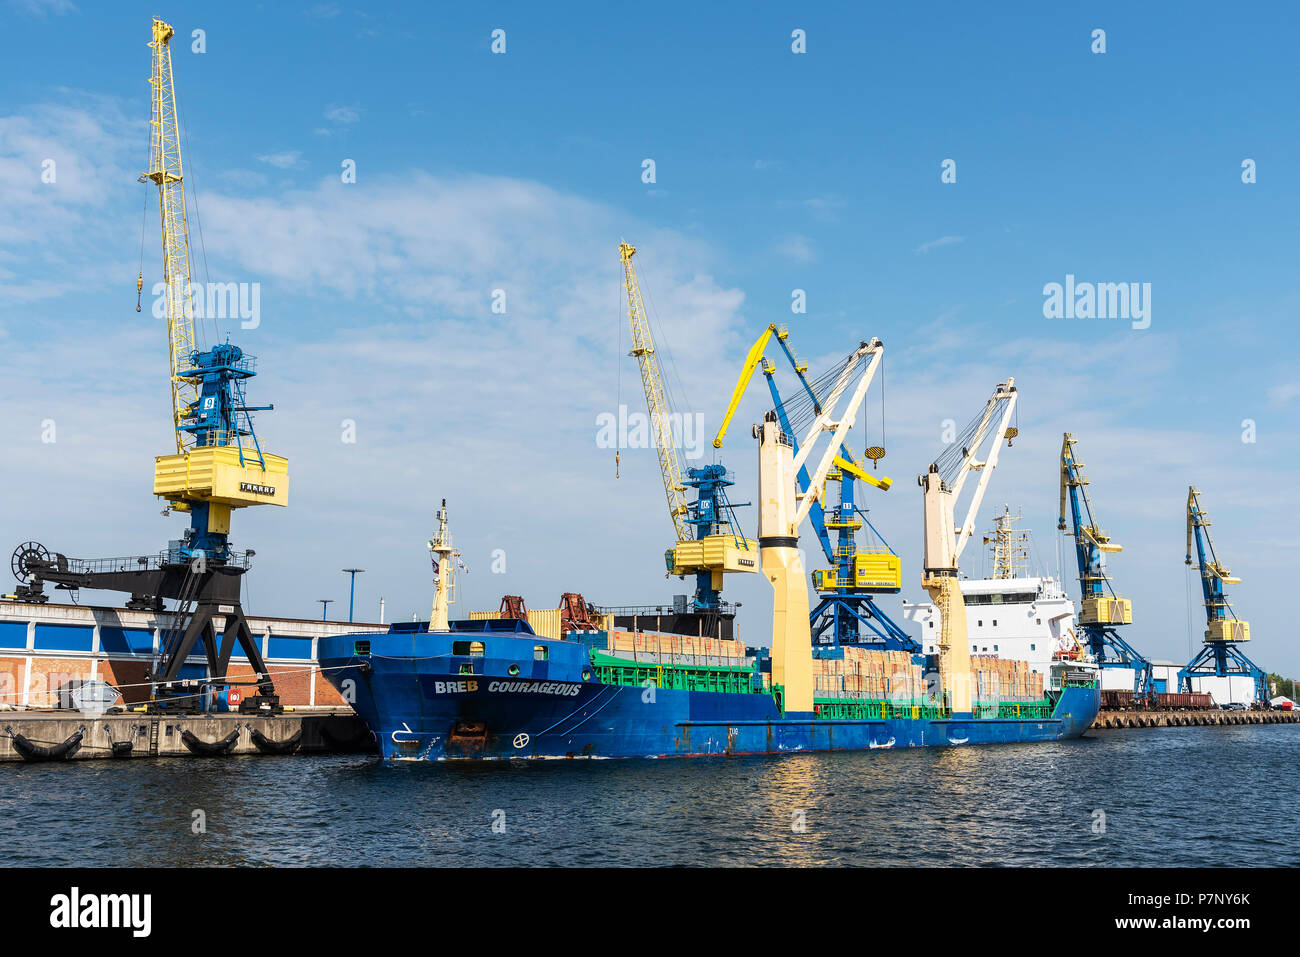 Cargo ship and cranes at the overseas port, Wismar, Mecklenburg-Western Pomerania, Germany - Stock Image